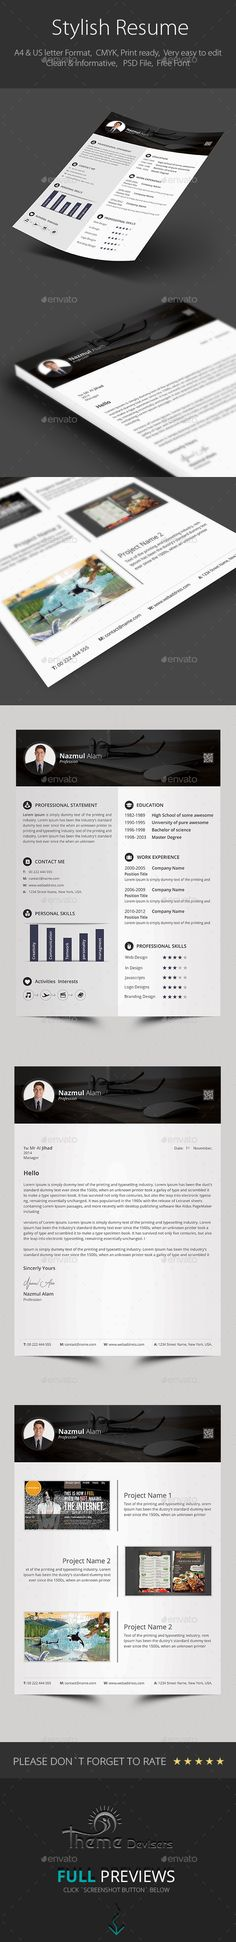 Forklift Operator Resume Pdf Resume  Modern Resume Template Oilfield Resume with How To Build A Great Resume  Skills On Resume Examples Pdf